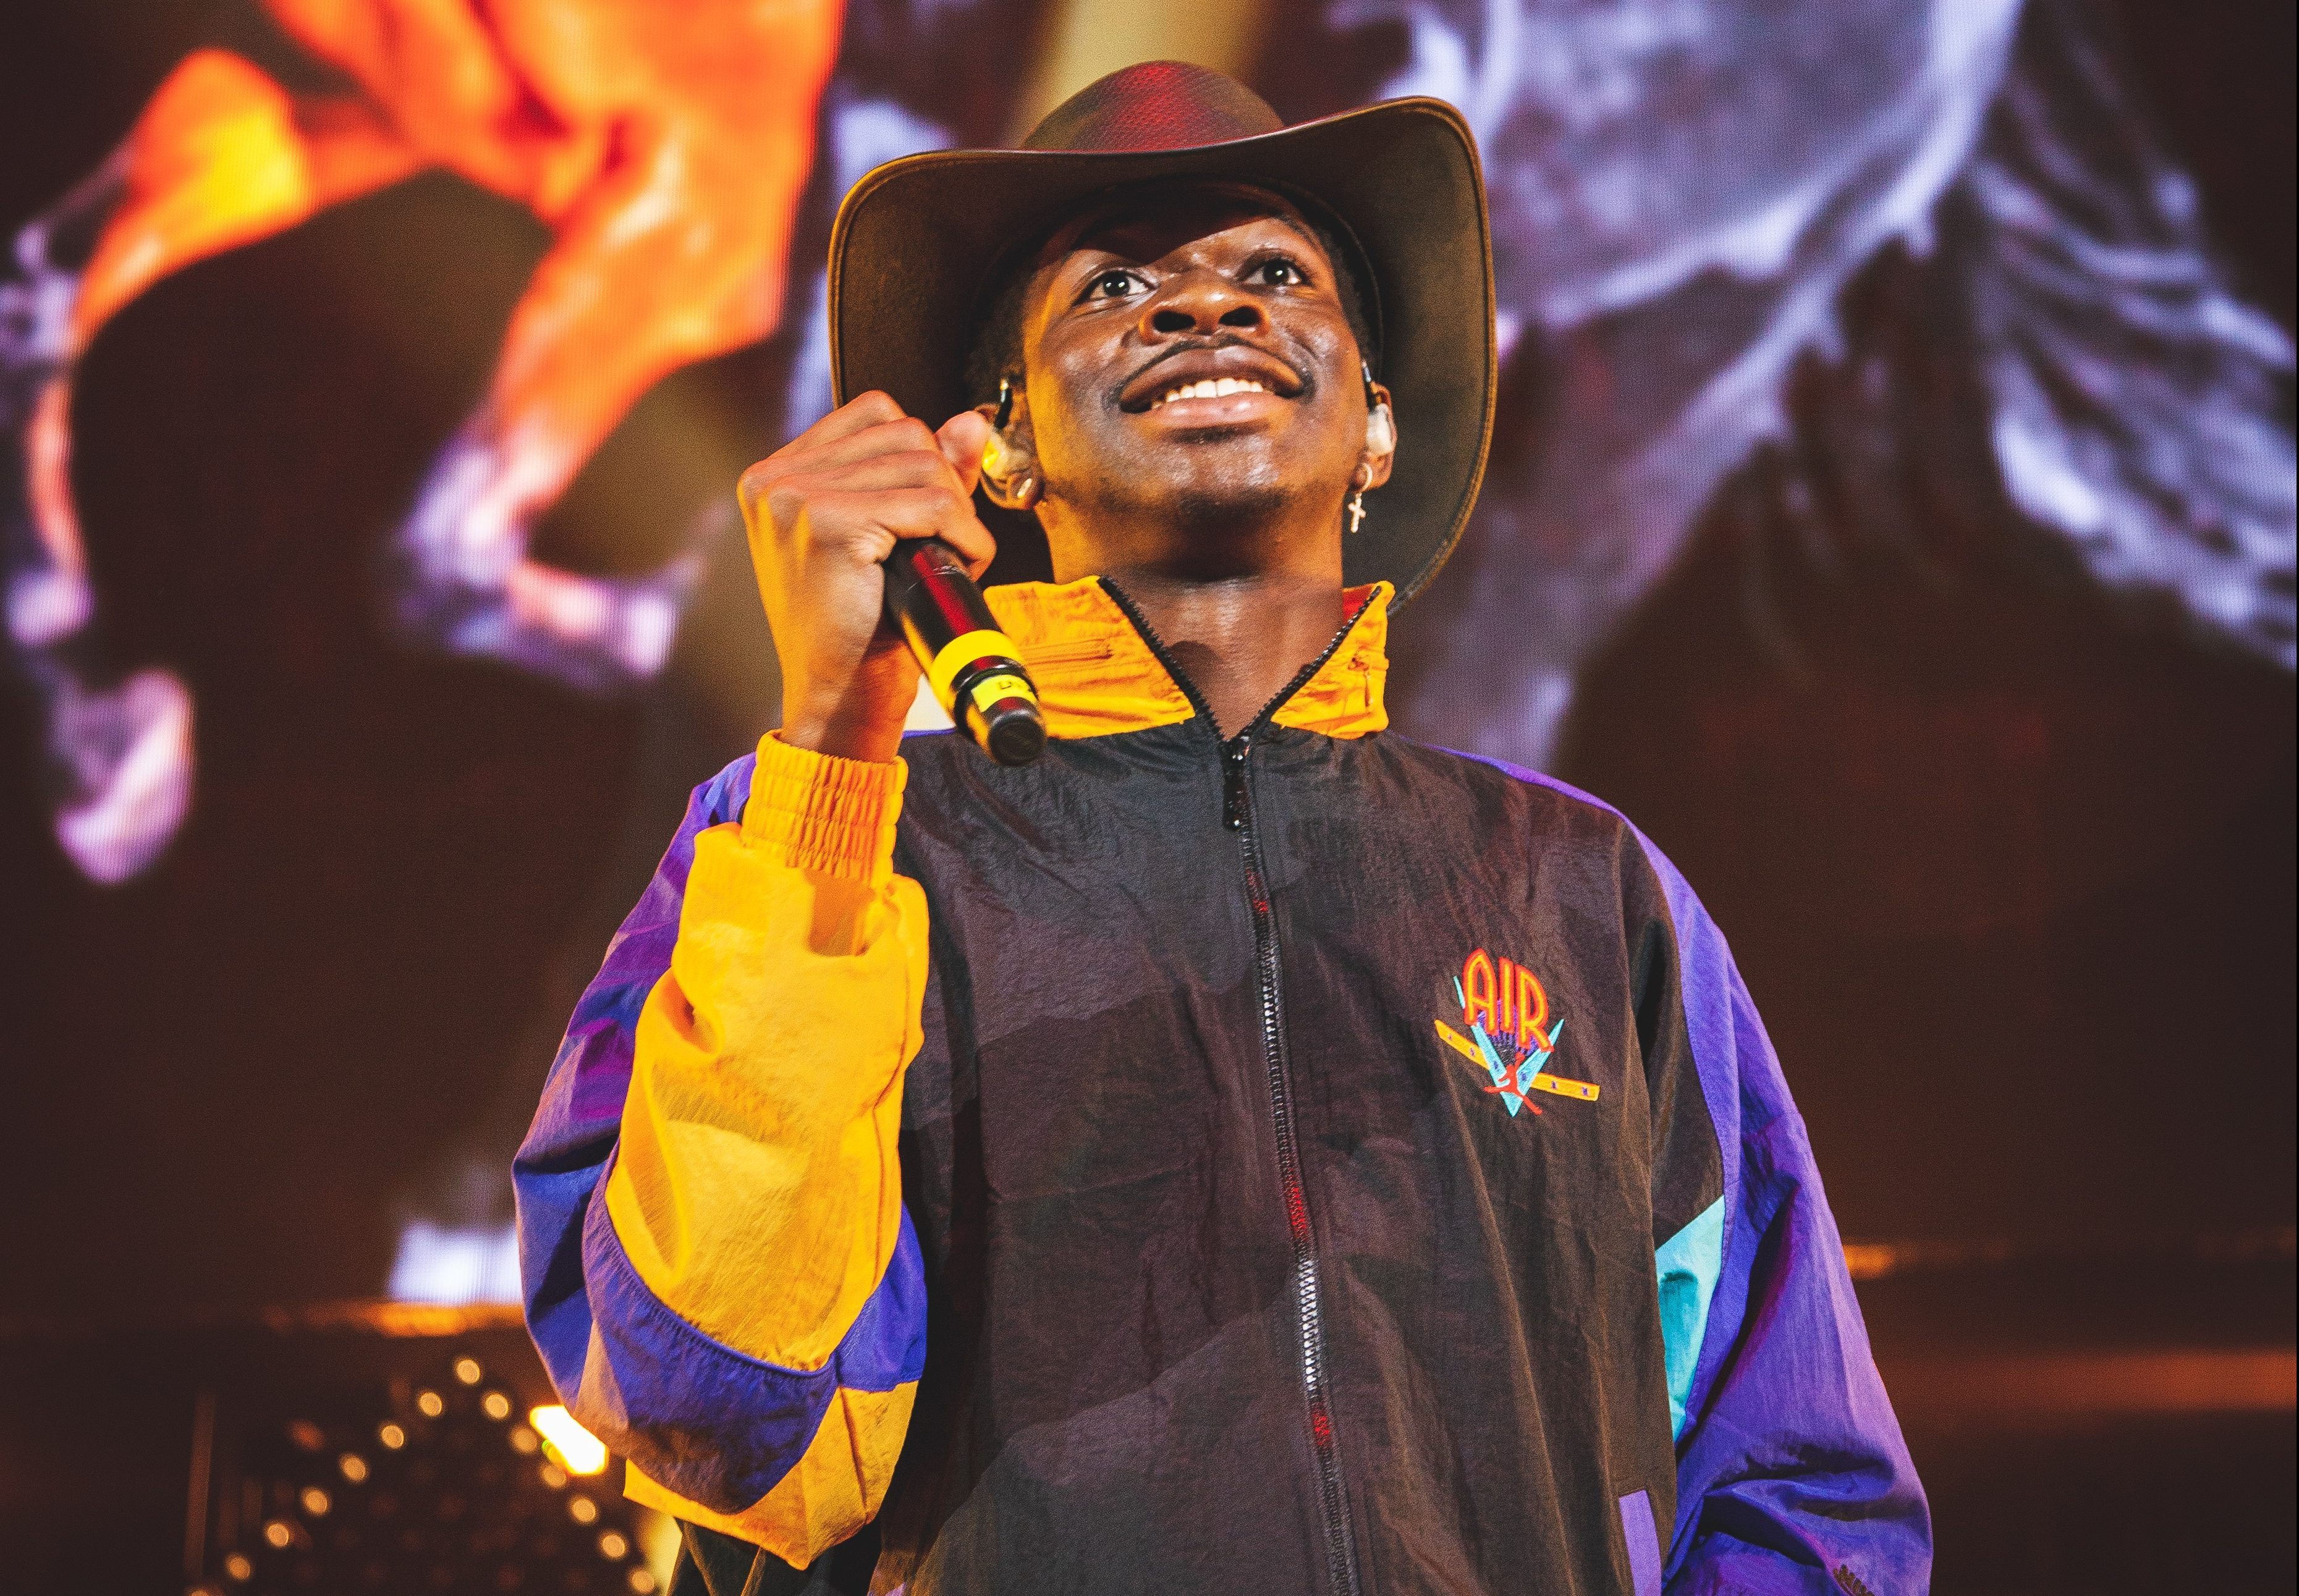 Taco Bell Announces New Partnership With Lil Nas X